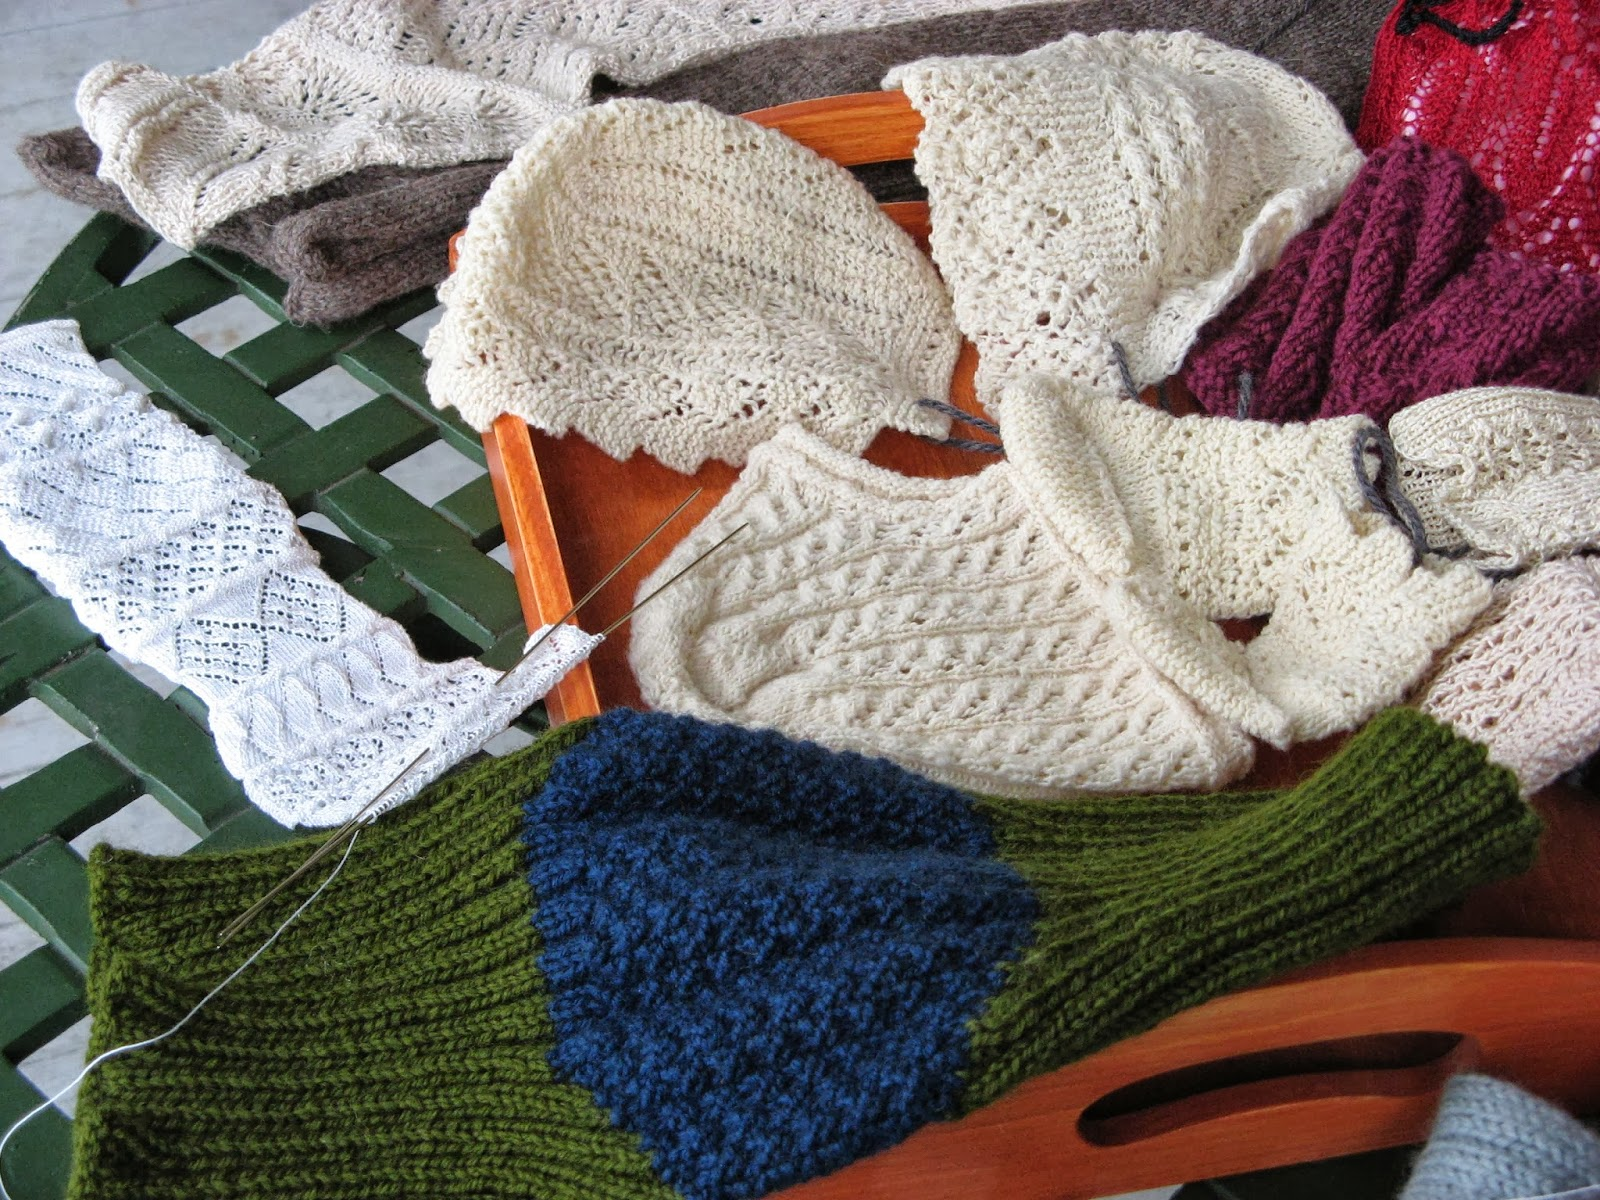 Knitting Household Items : One more stitch portfolio for knitted items